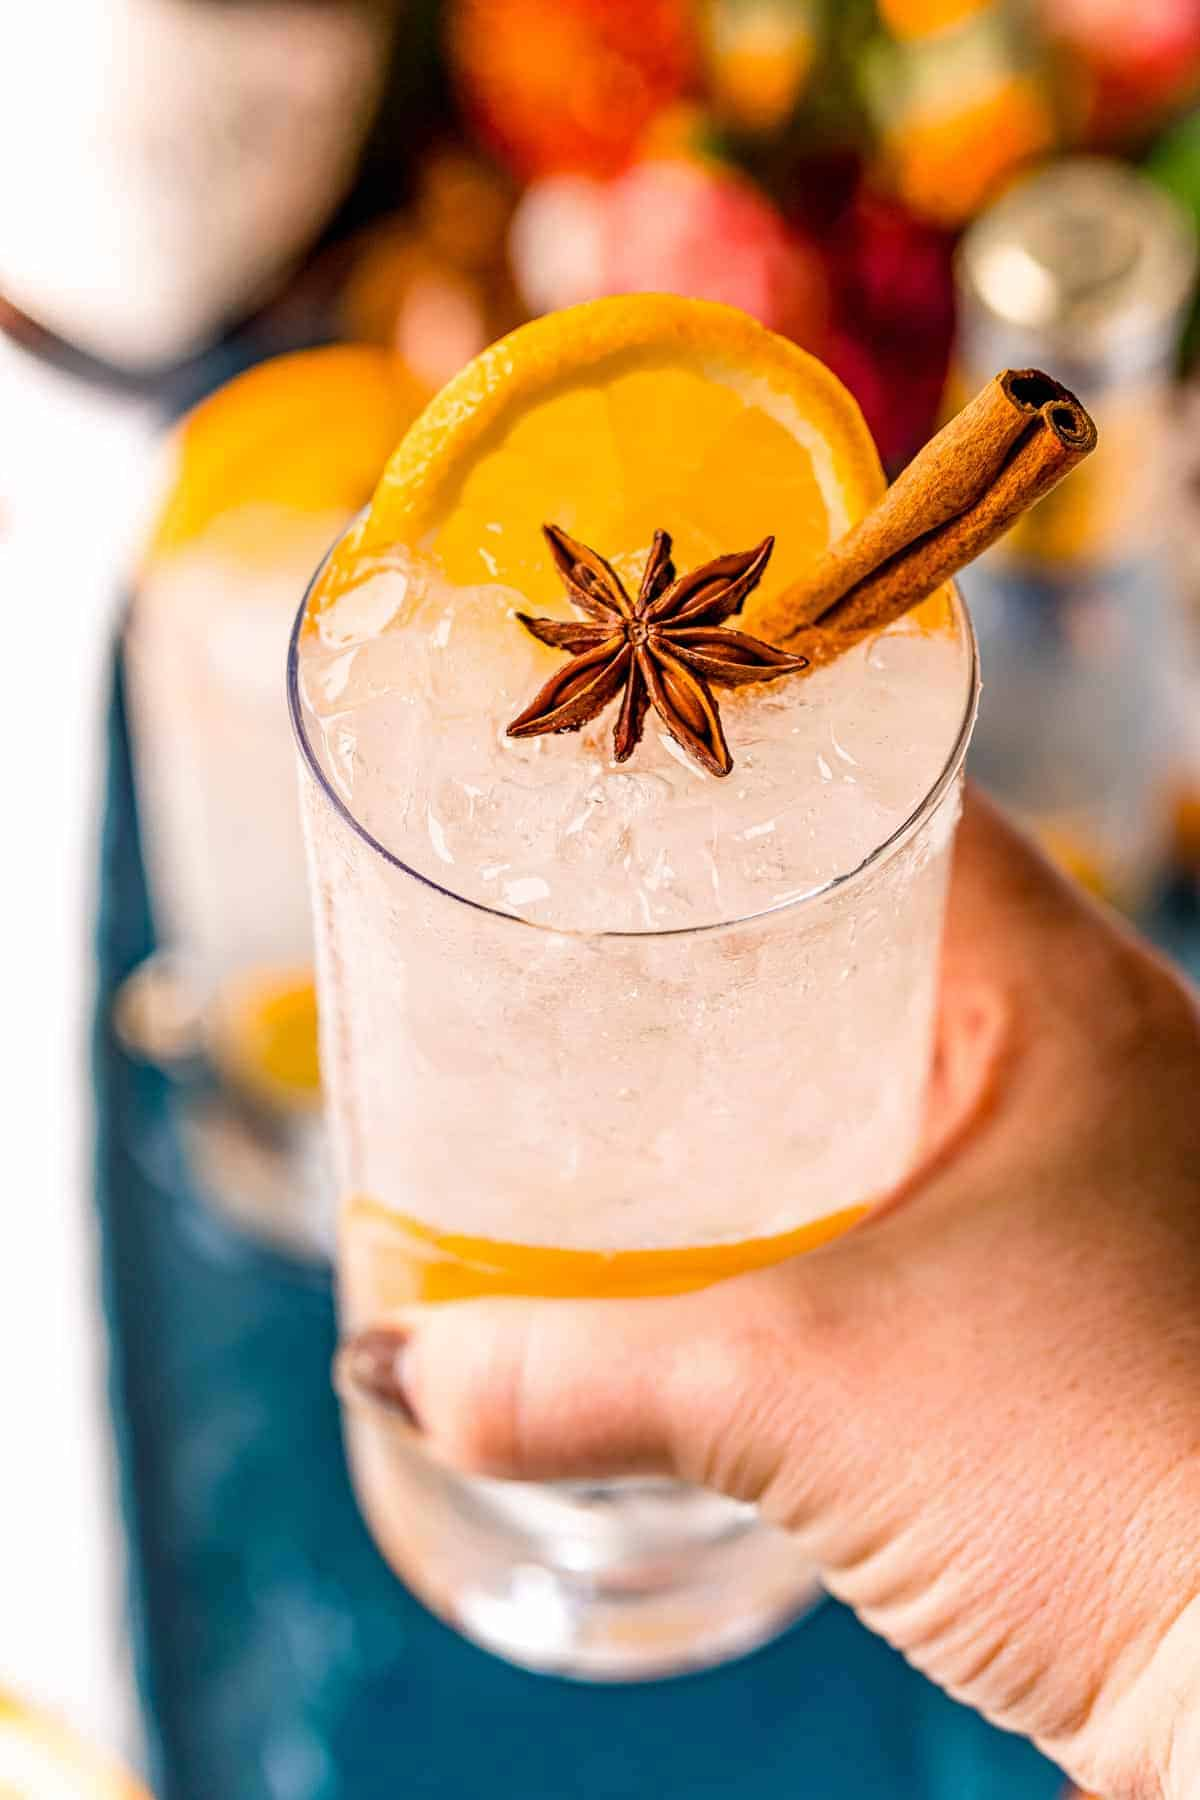 Cocktail with orange and star anise in a hand with painted nails.